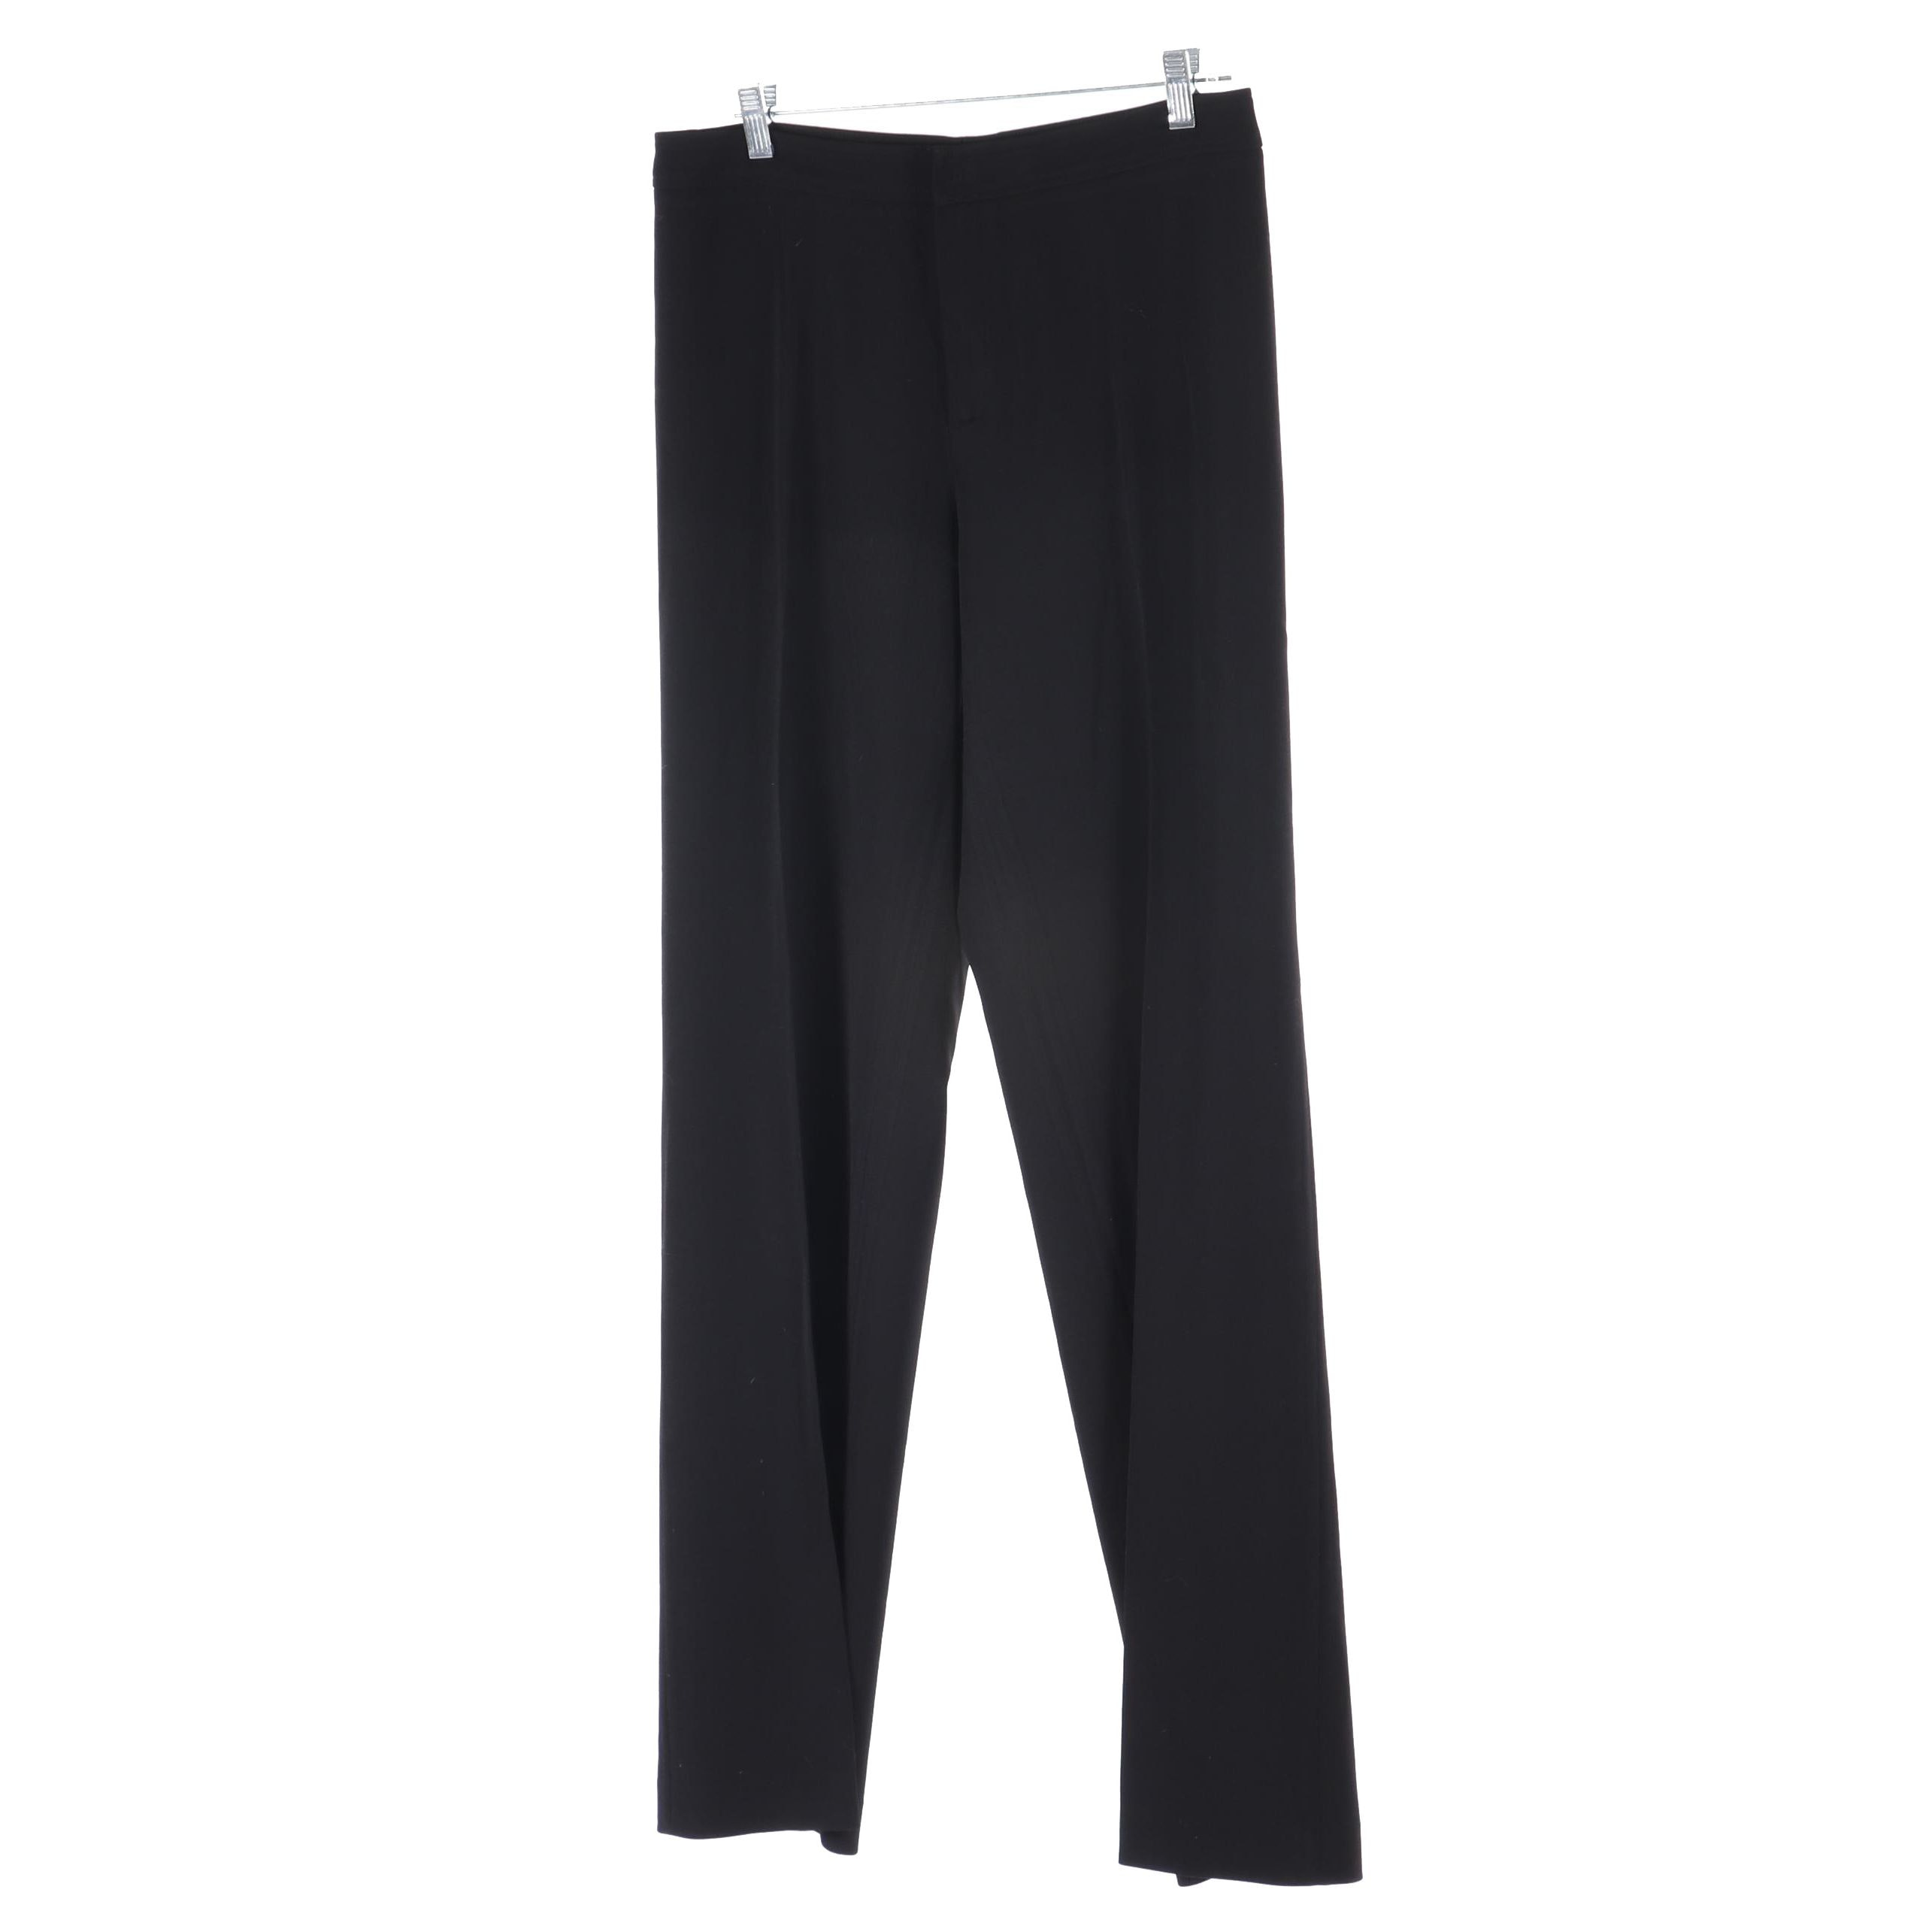 Philippe Adec Paris Black Dress Pants